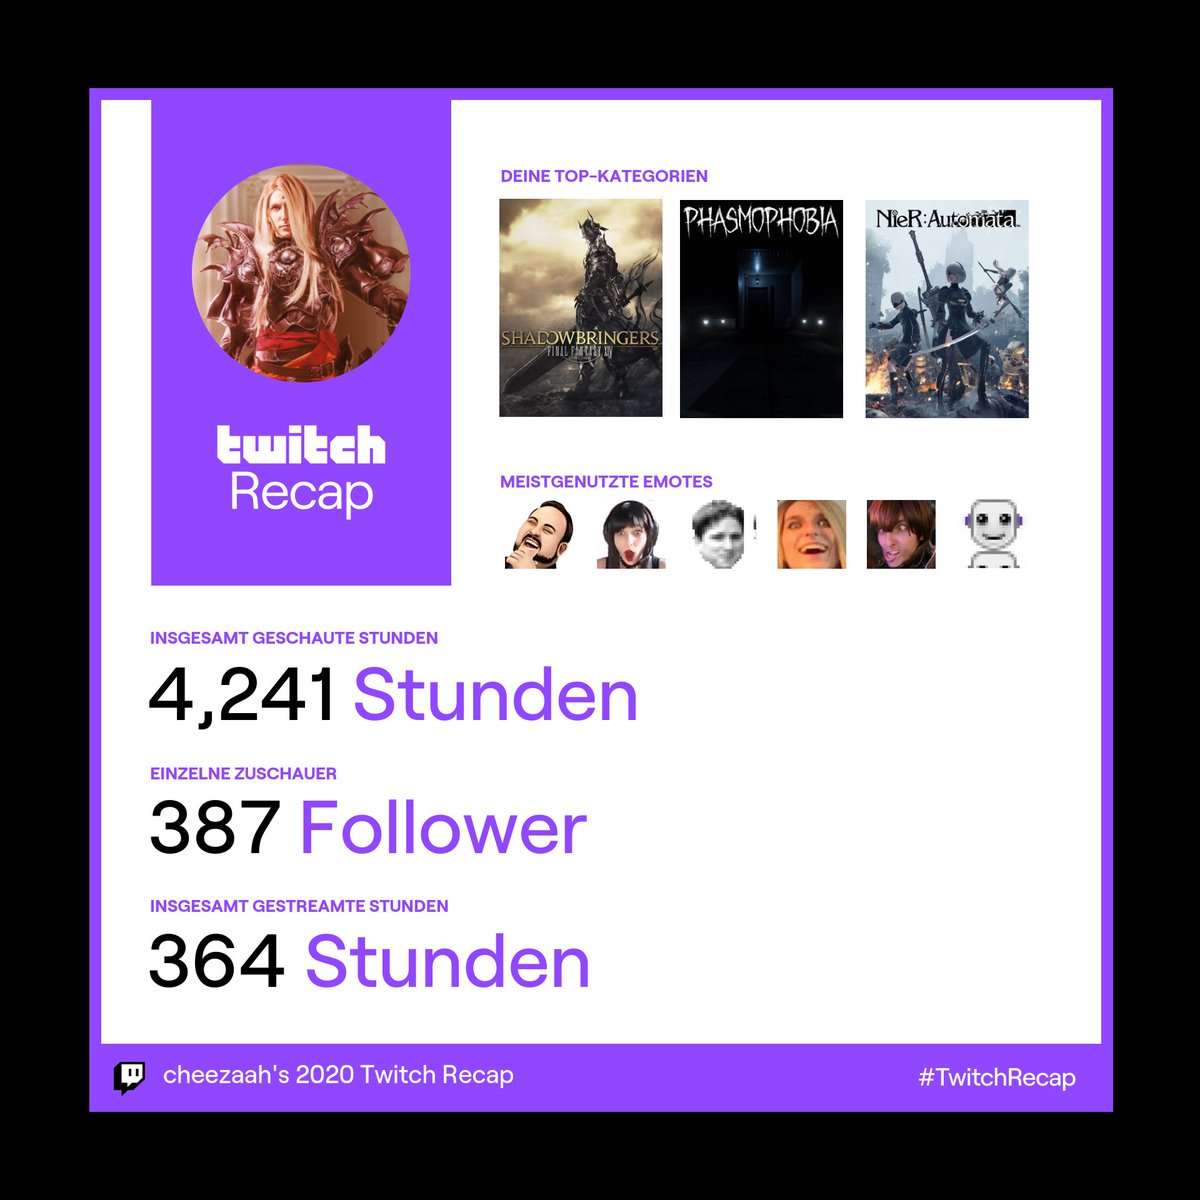 Sorry if it's in german but holy cow thanks to everyone who joined my streams! Y'all made this experience so awesome. We're making baby steps!#TwitchRecap